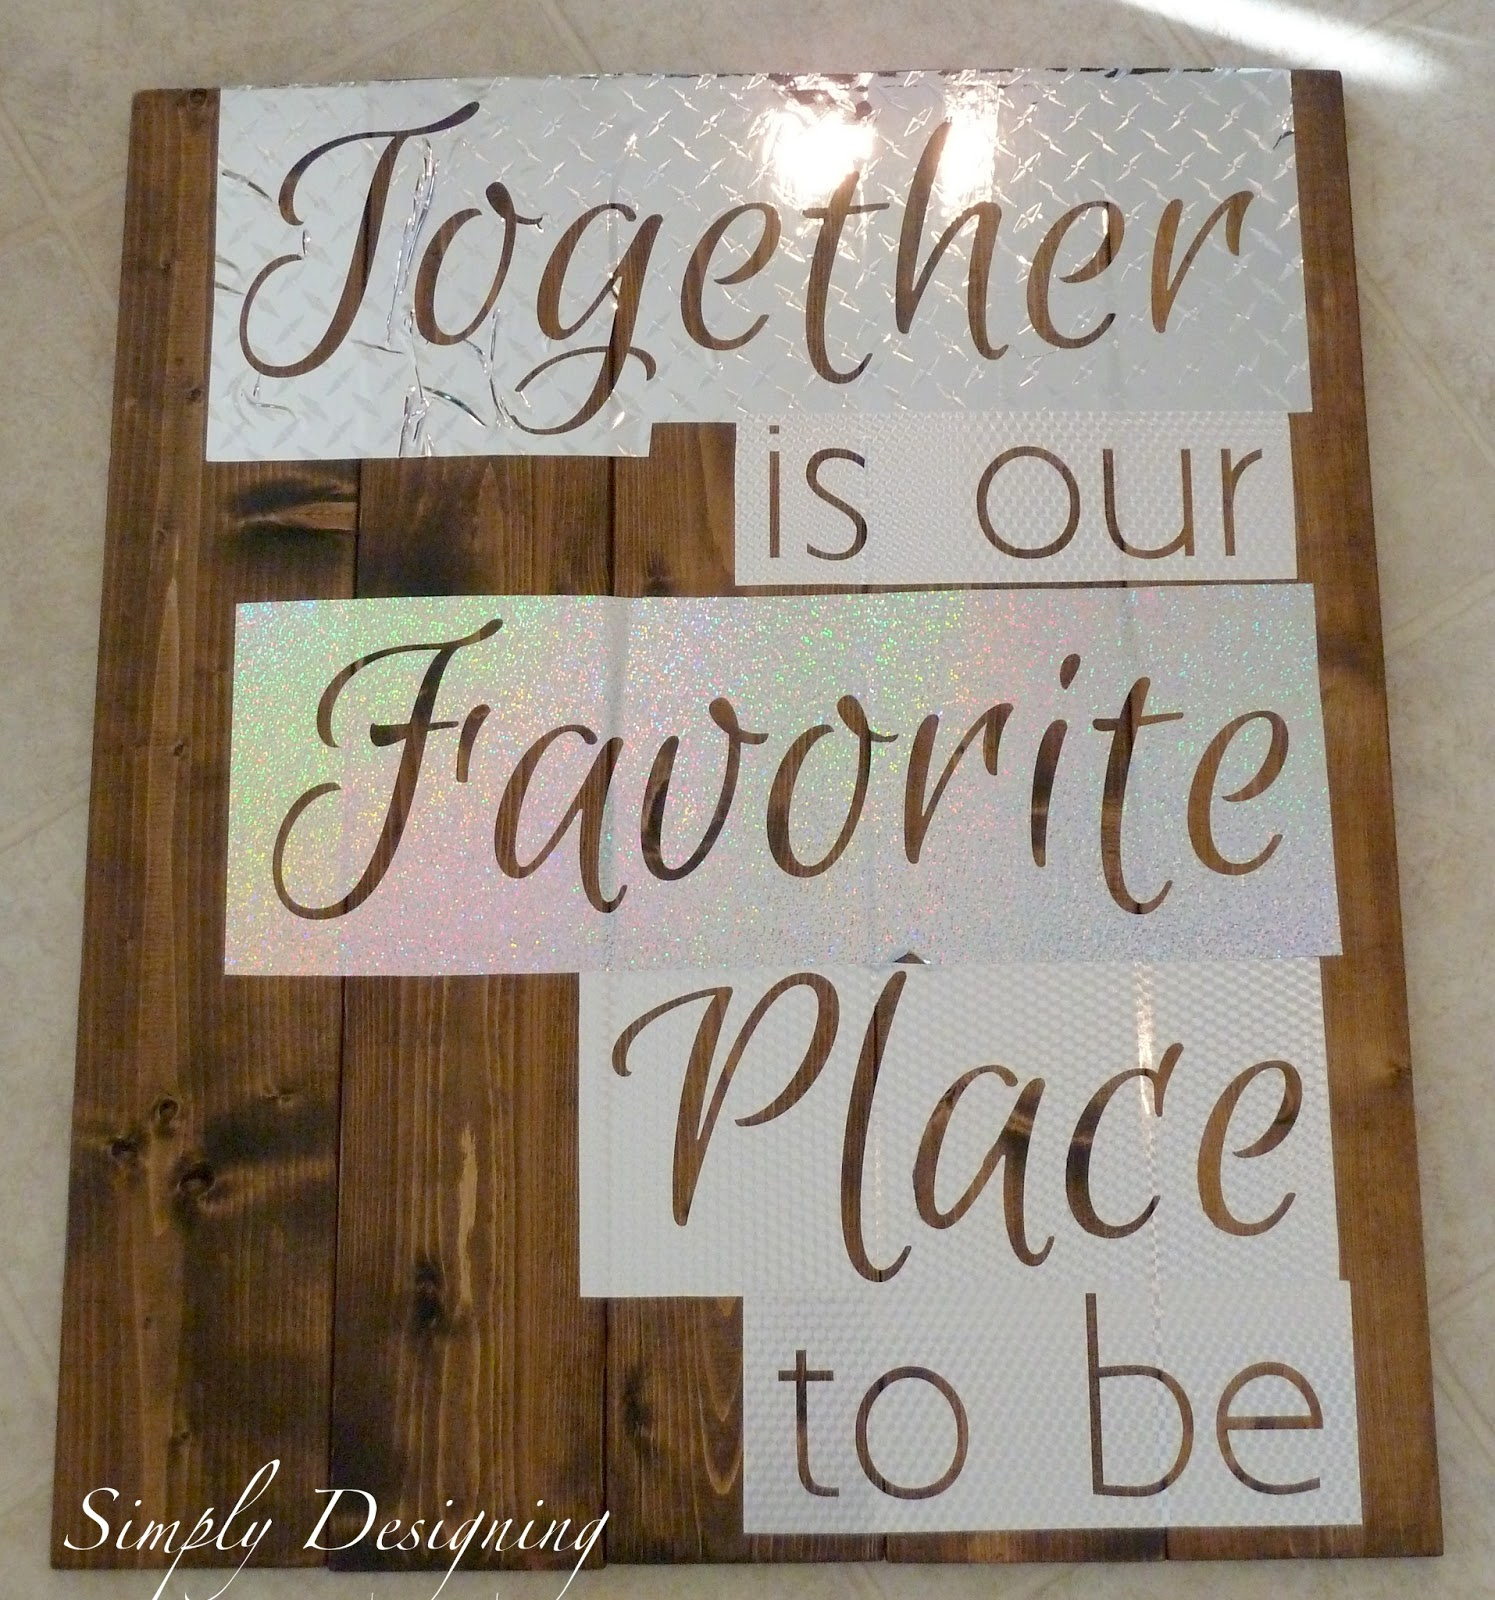 Diy signs that look like pallet wood making diy signs from pallet wood is fun and easy you can customize your pallet spiritdancerdesigns Gallery